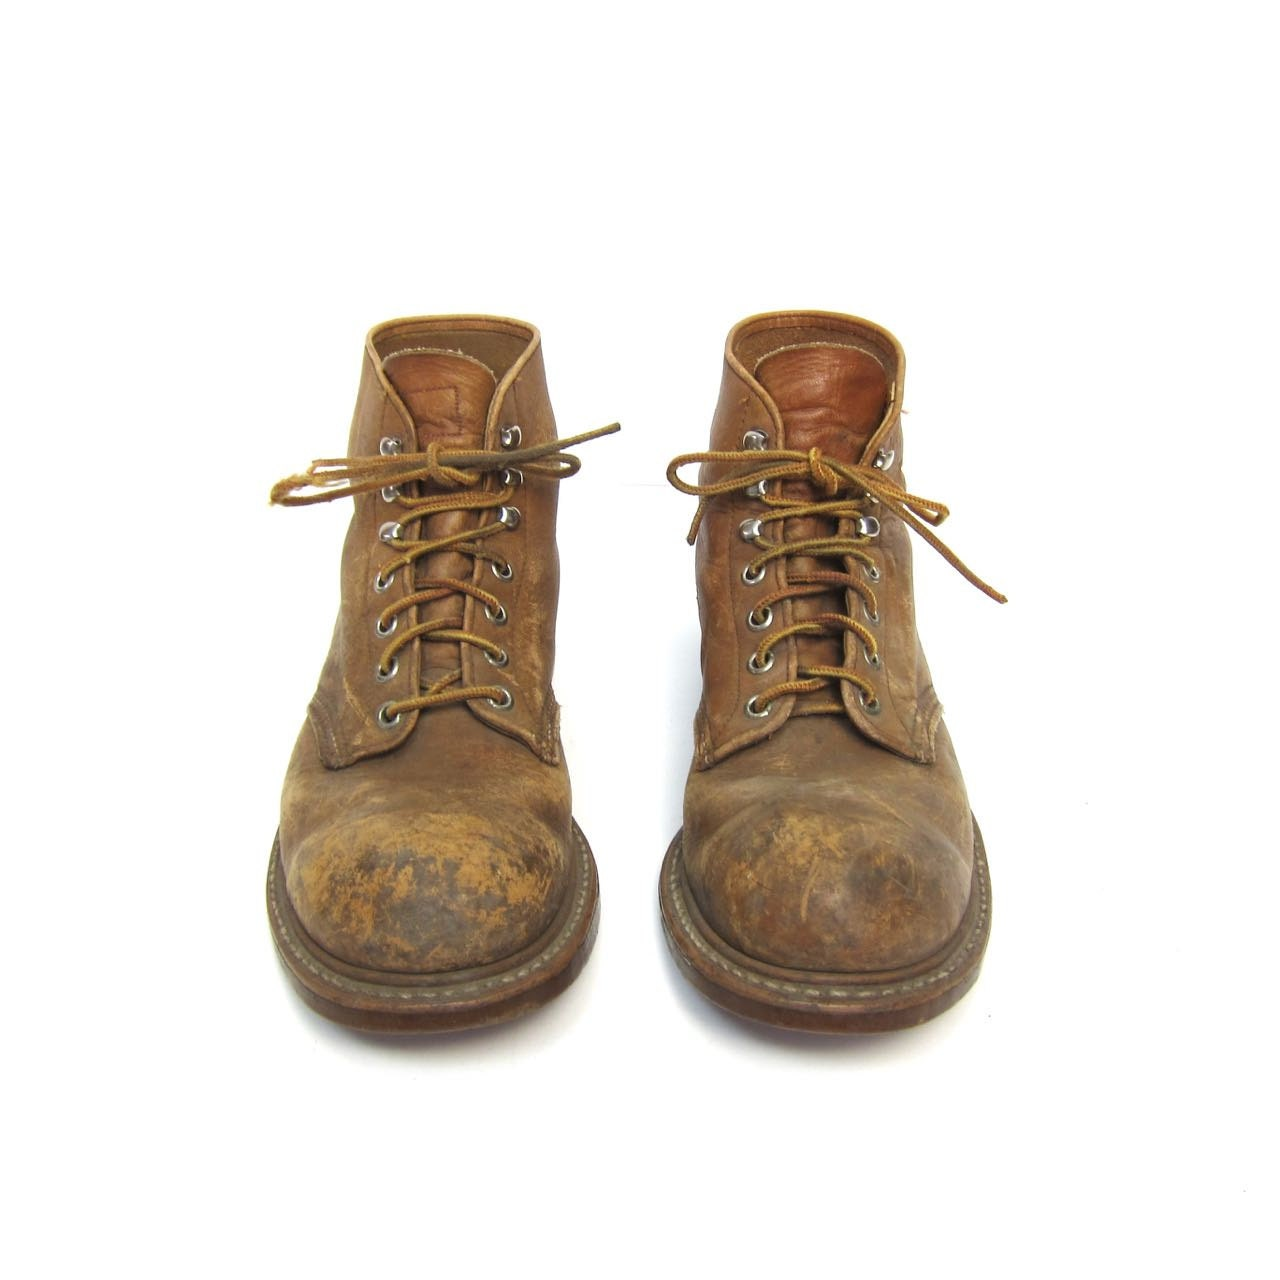 Vintage Red Wing Work Boots Leather Red Wings Distressed Lace Up ...